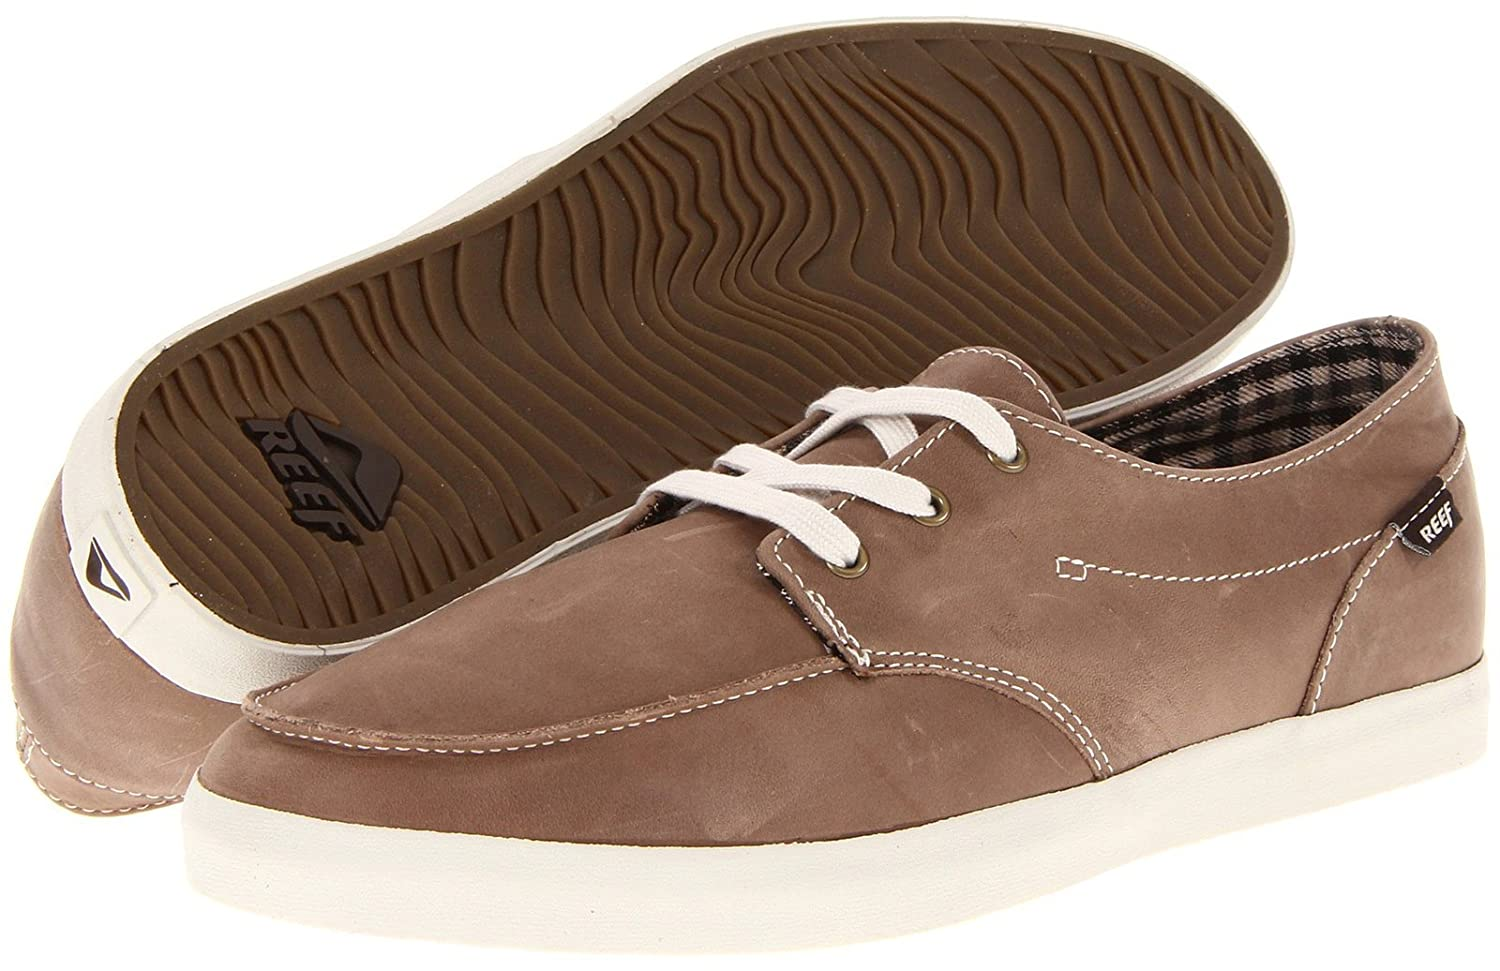 ZAPATILLAS REEF DECK HAND FGL 2 25.5|Brown